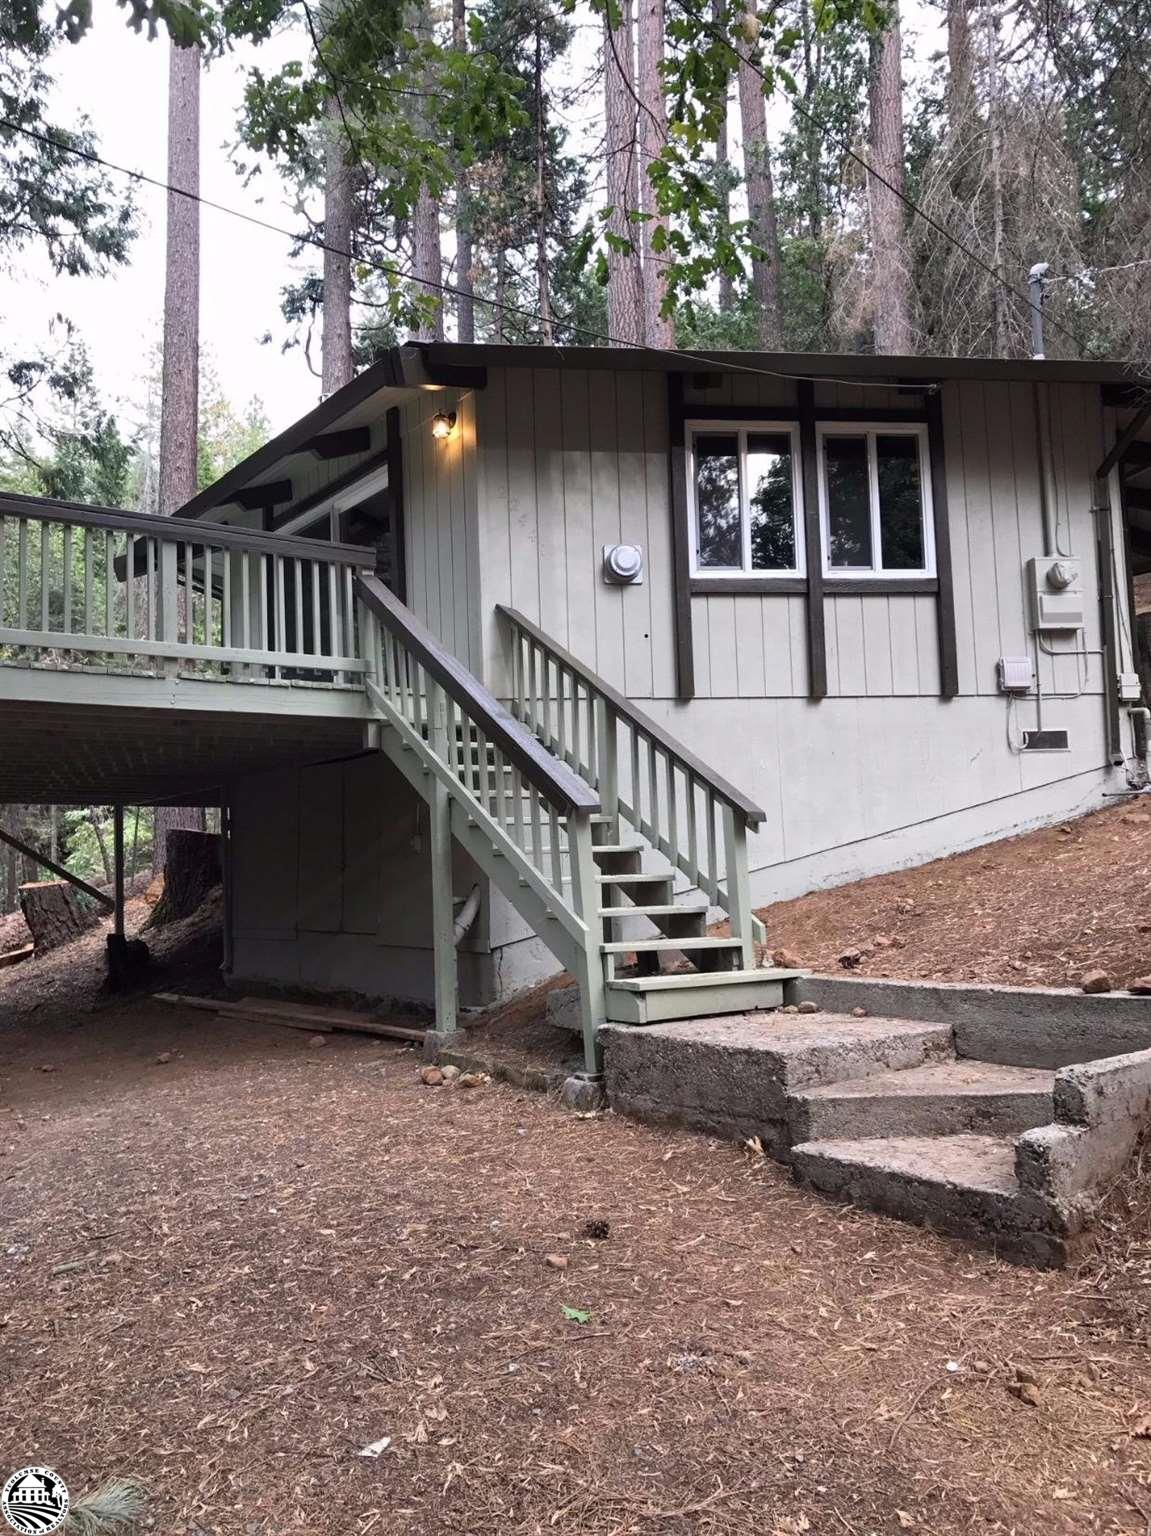 twain harte spanish girl personals Gold country vacation rentals - craigslist cl  (twain harte) pic map hide this posting restore restore this posting $155 favorite this post oct 2 sierra vacation house - with free access to private neighborhood lake $155 2br - 1500ft 2 - (twain.